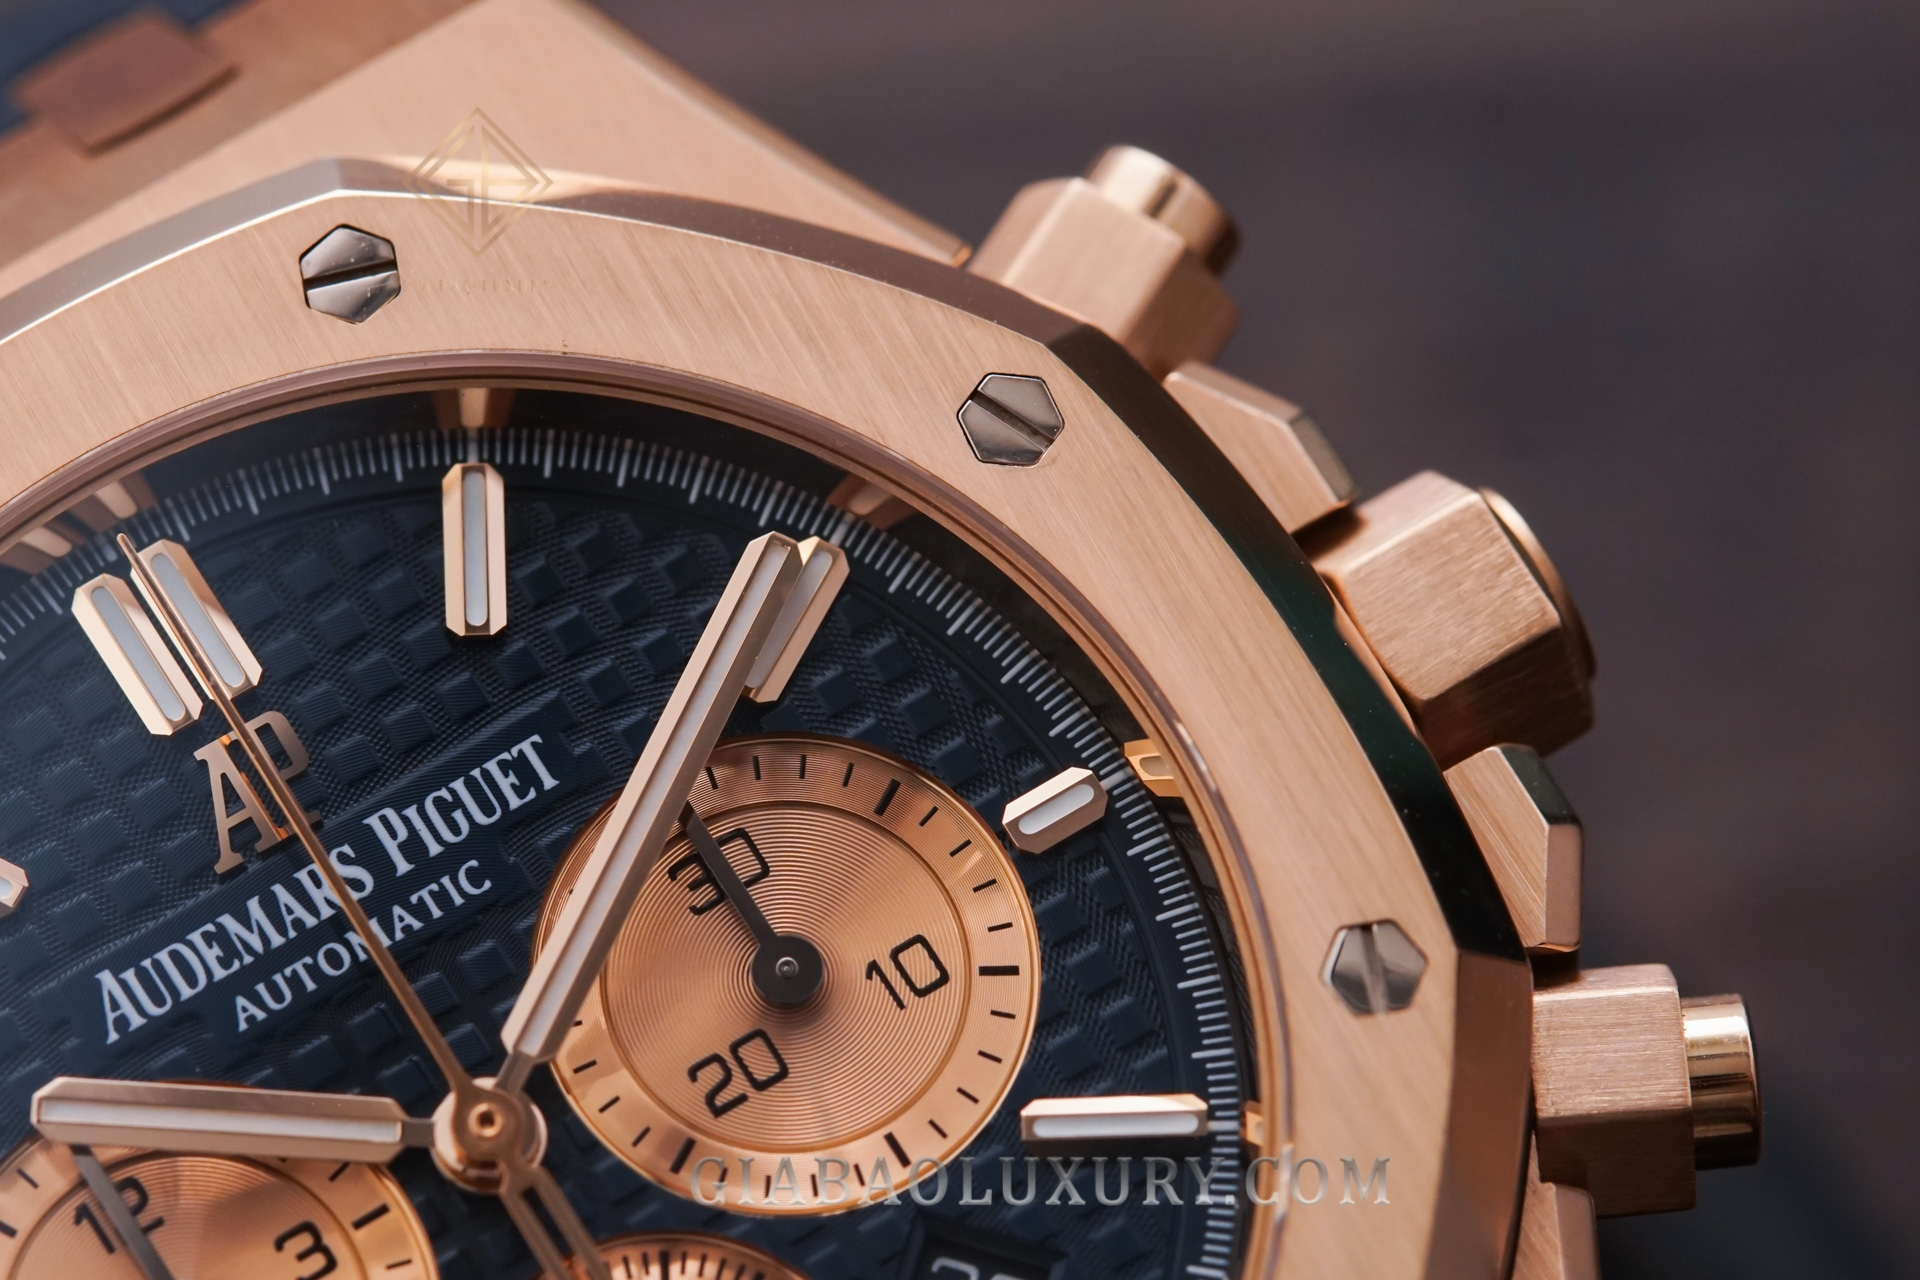 đồng hồ Audemars Piguet Royal Oak Chronograph